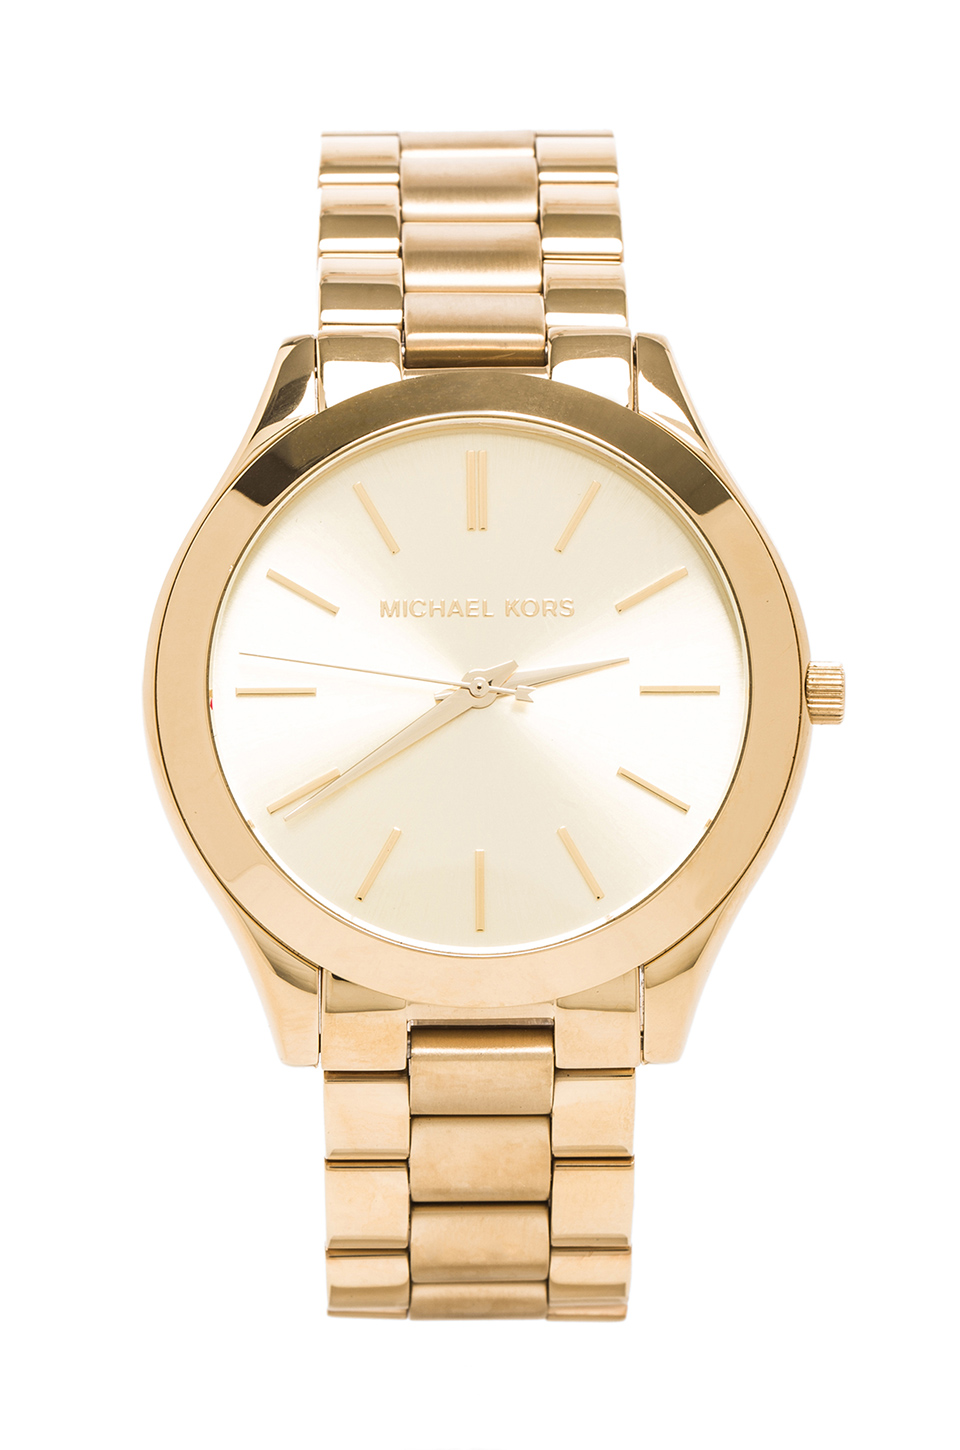 Michael Kors Slim Classic Watch in Gold | REVOLVE